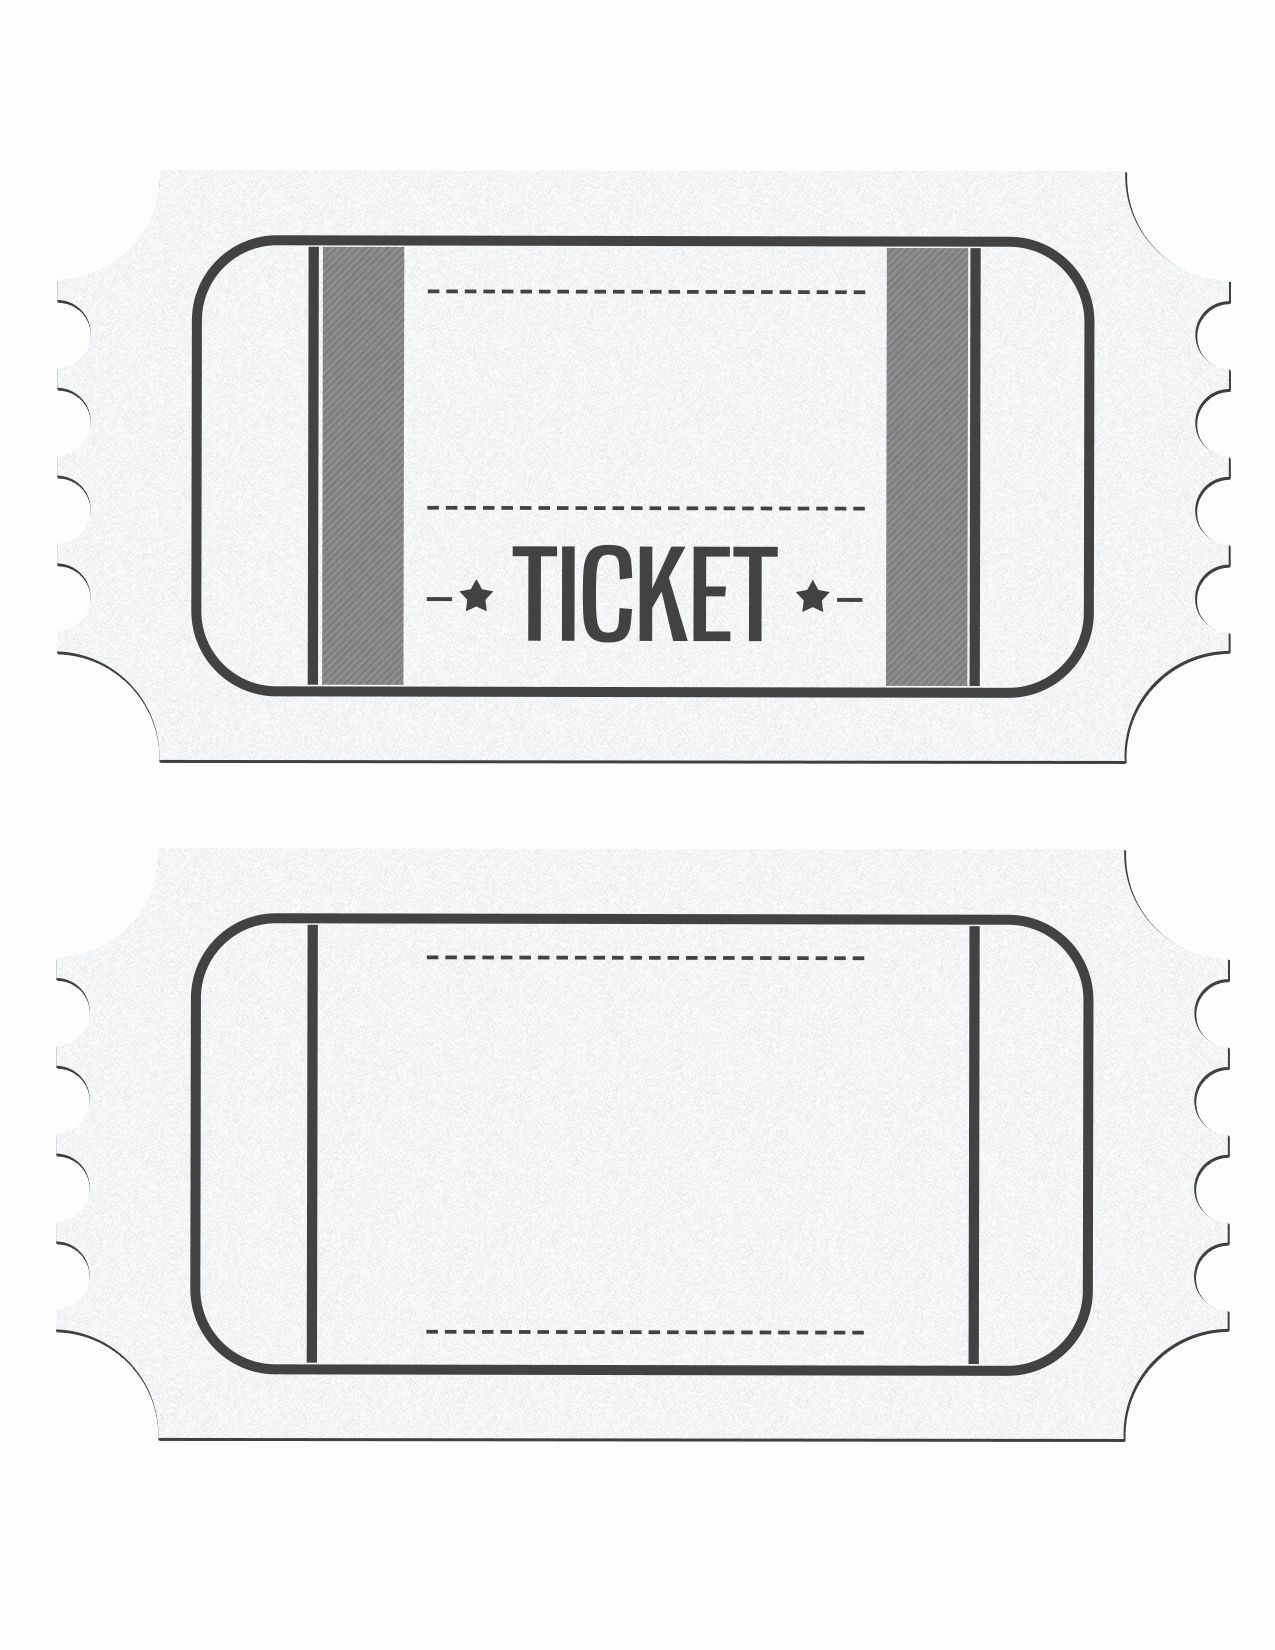 Vip Pass Template Microsoft Word Best Of Blank Movie Ticket Invitation Template Ticket Invitation Birthday Ticket Invitation Graduation Invitations Template